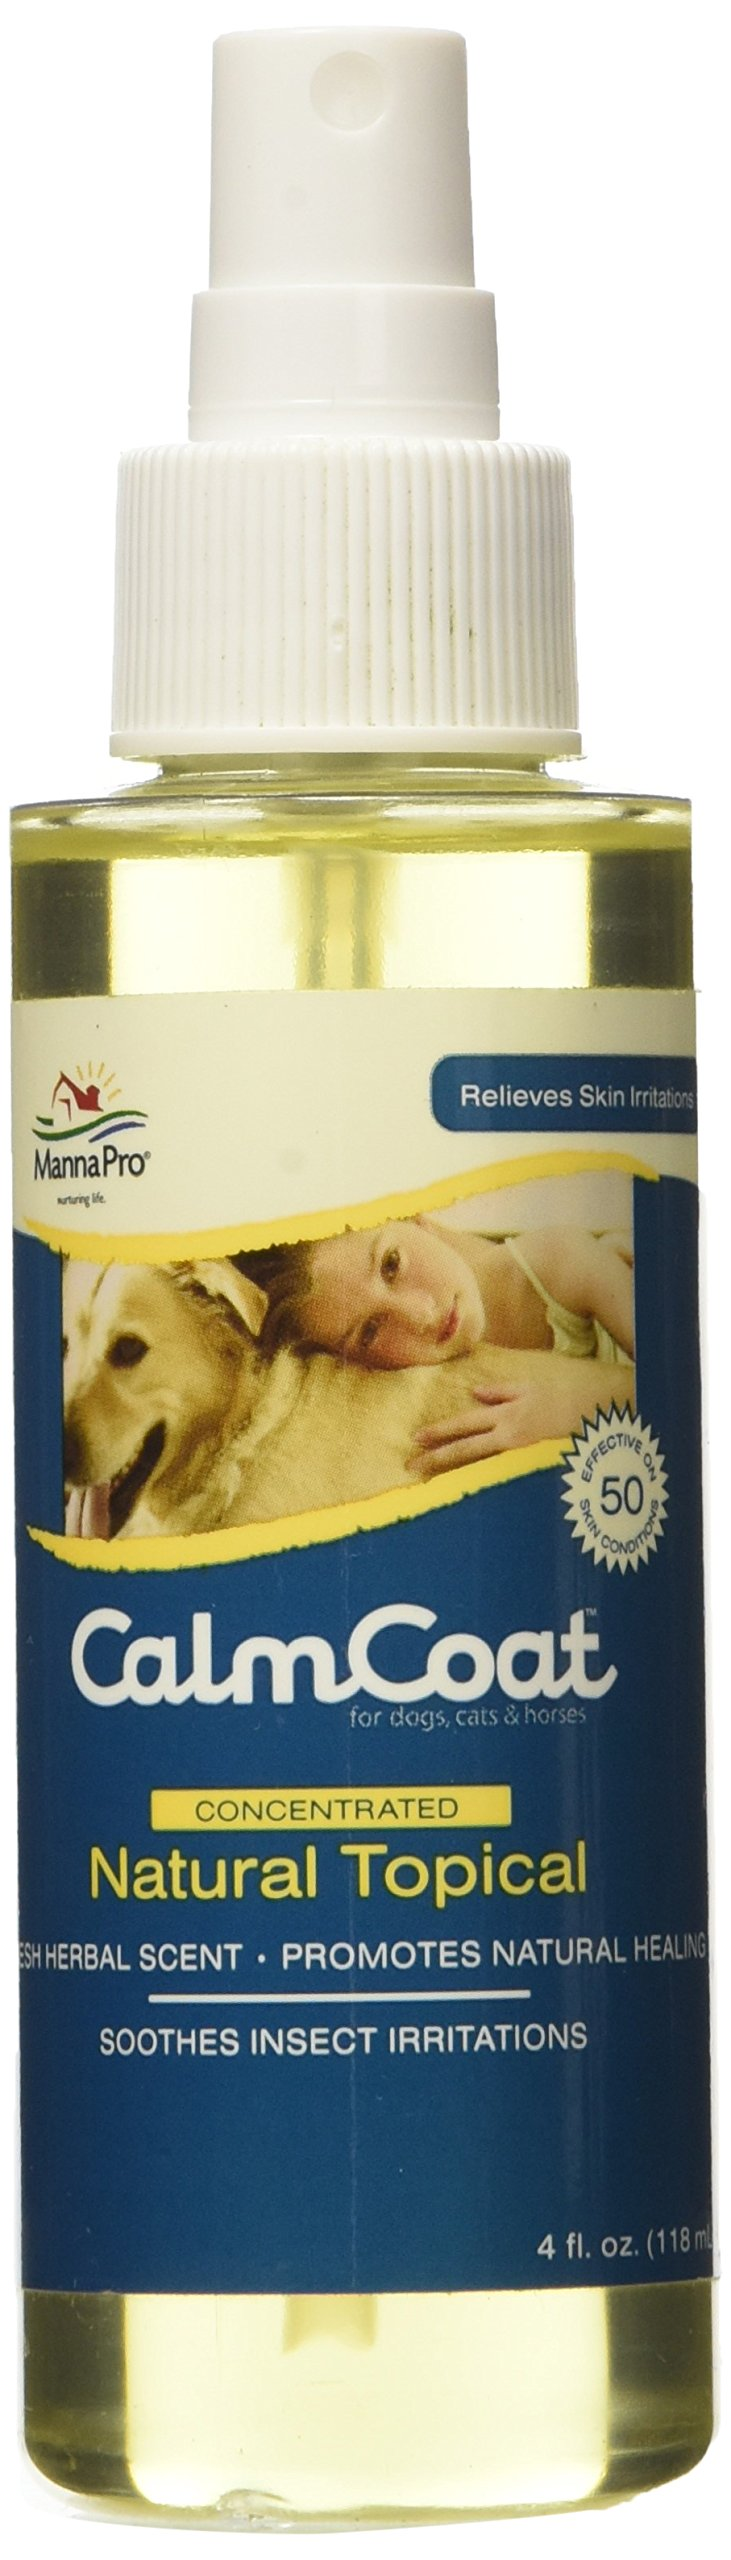 Manna Pro Calm Coat Topical Spray, 4 oz by Manna Pro